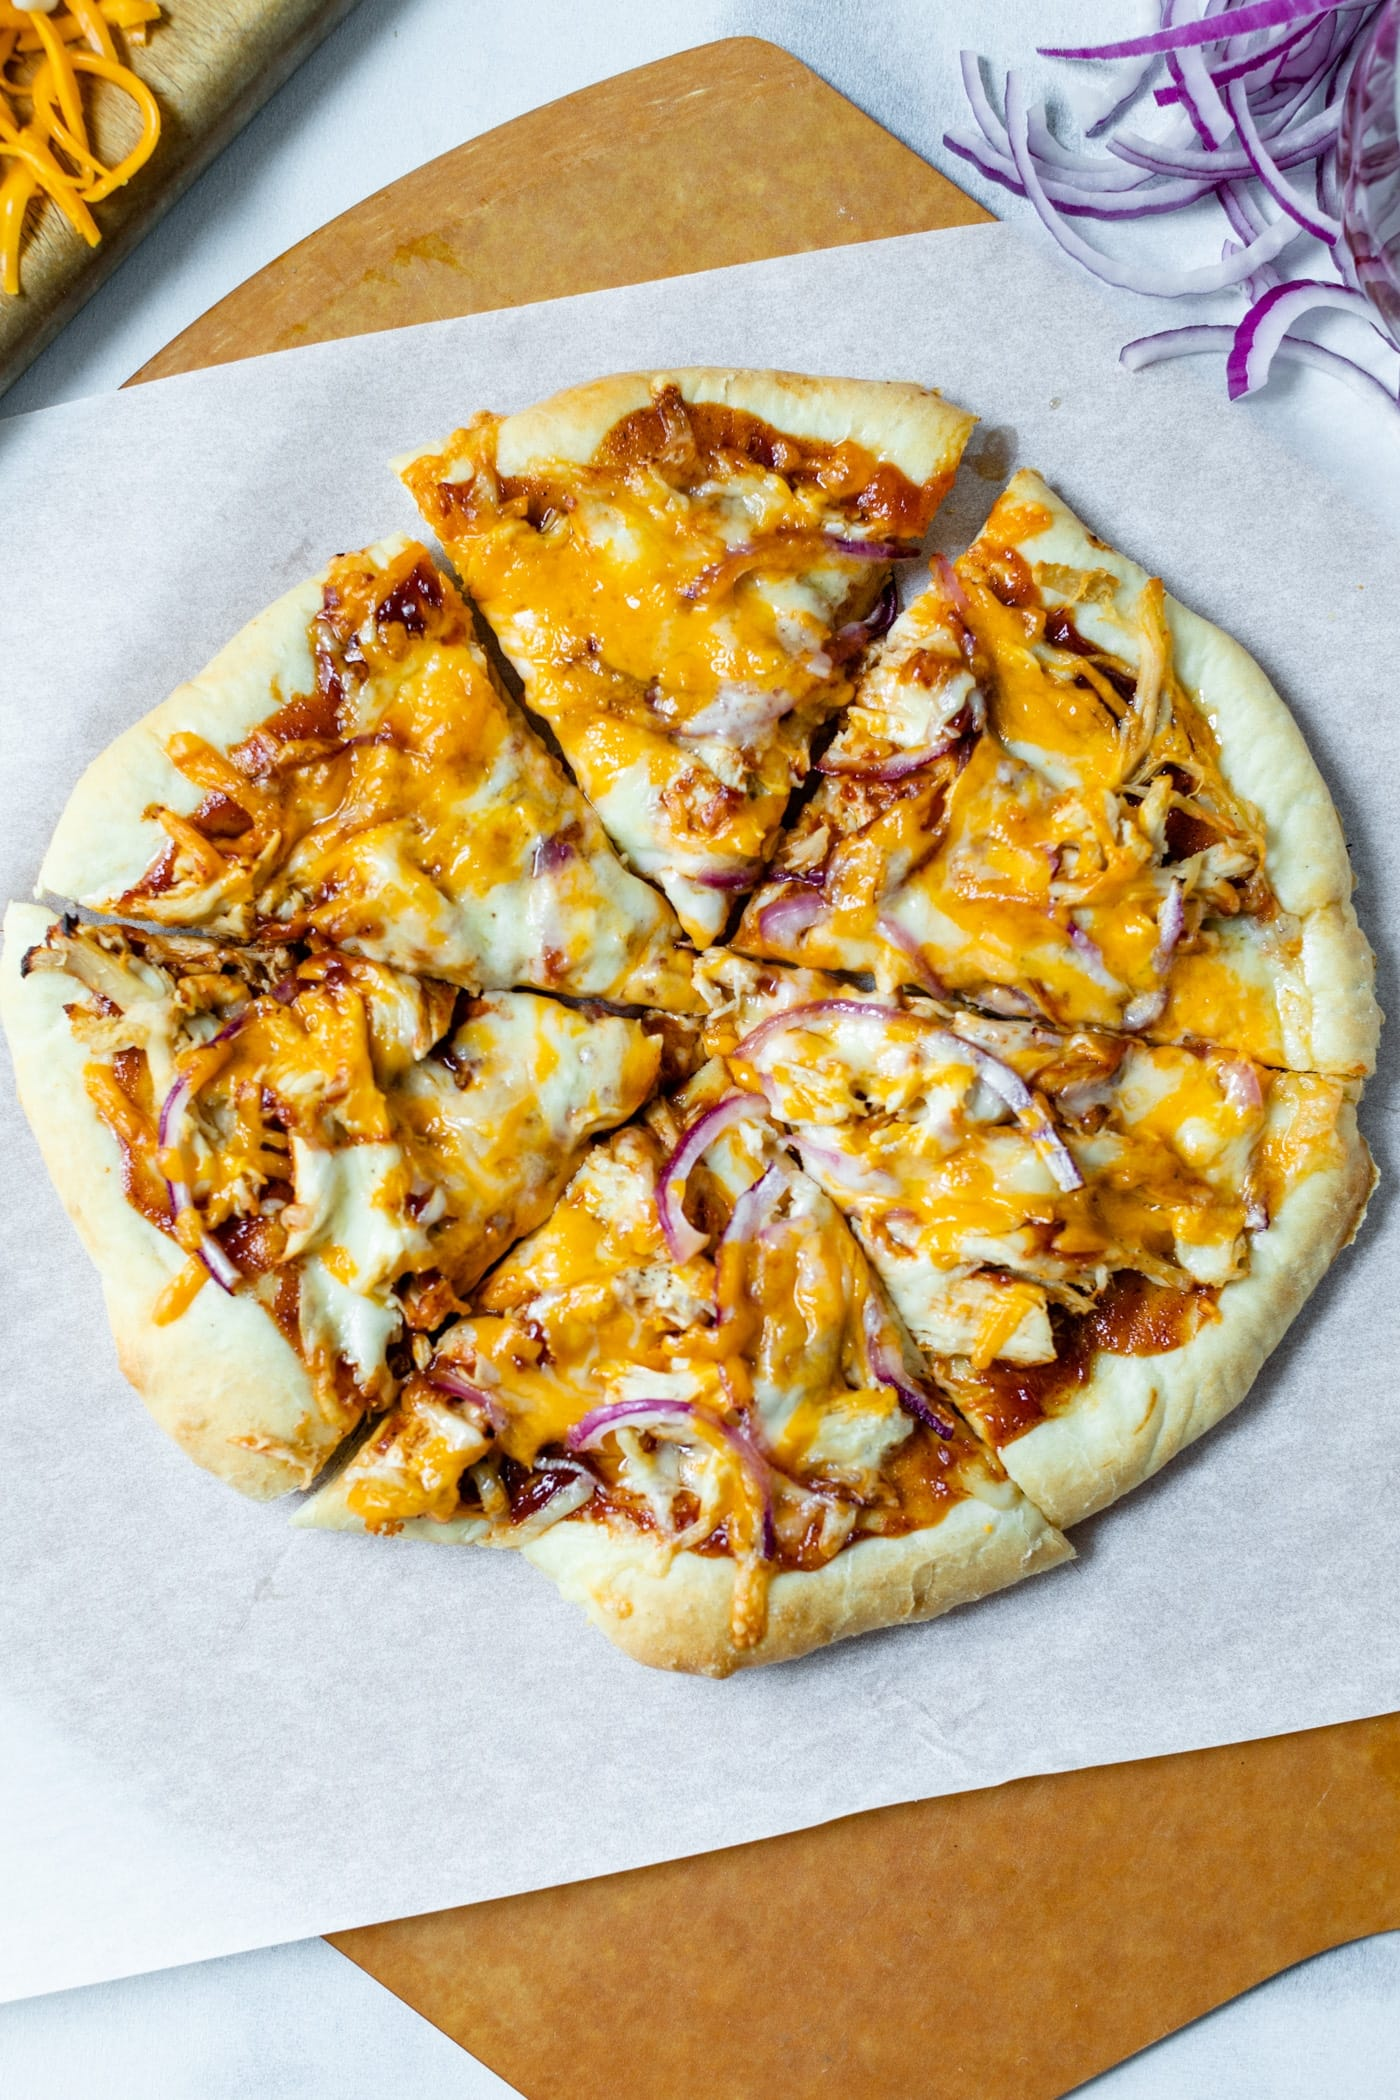 Top down view of sliced homemade barbecue chicken pizza made of chicken, cheese, barbecue sauce and red onion on a homemade crust on a piece of white parchment and pizza board with extra red onions and cheese on cutting board all on a marble surface